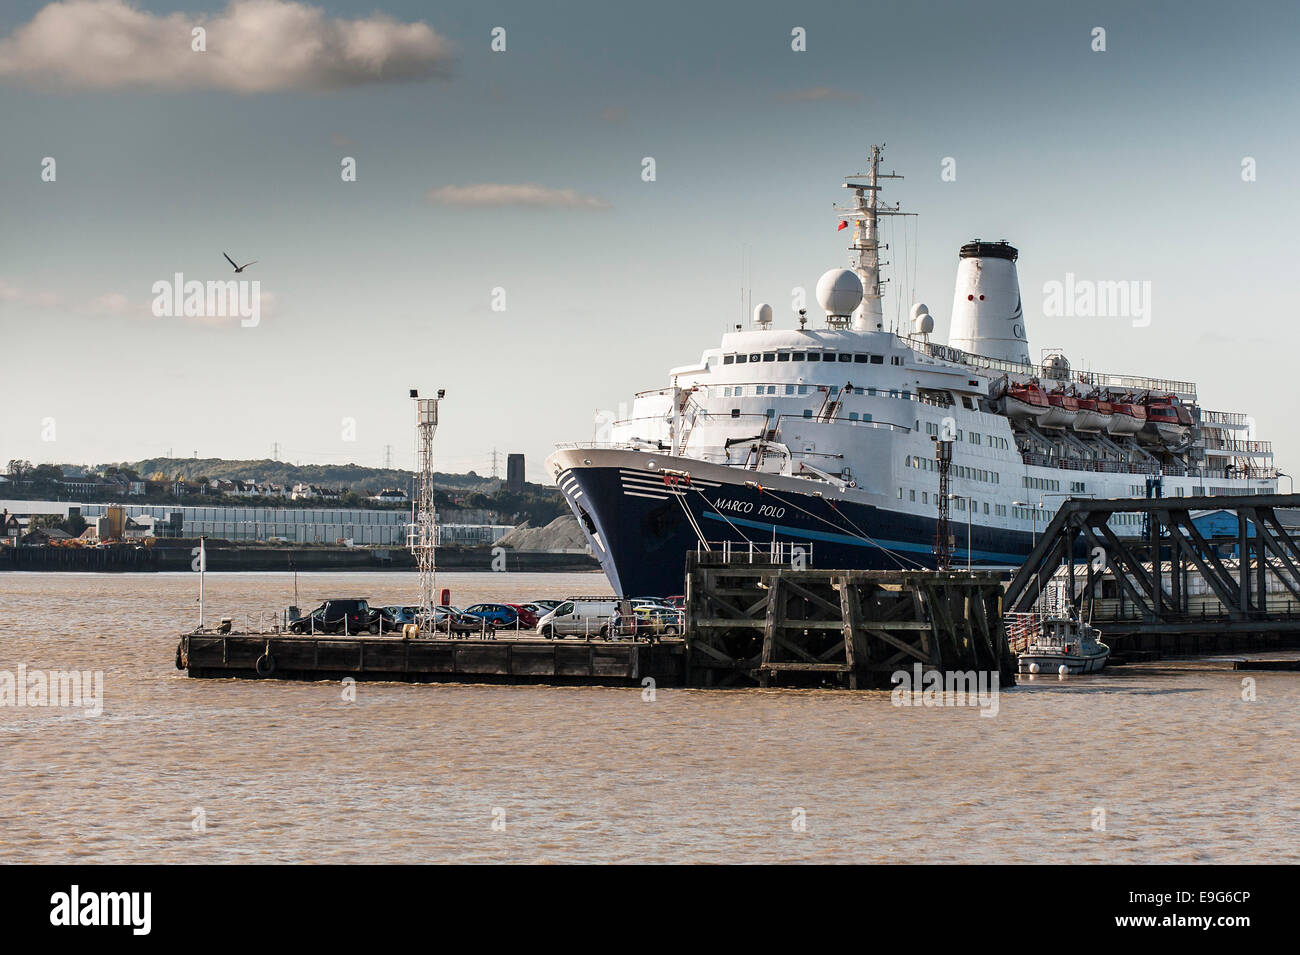 Tilbury, Essex, UK. 27th October 2014.  The cruise ship, Marco Polo berthed at Tibury prior to its departure to - Stock Image